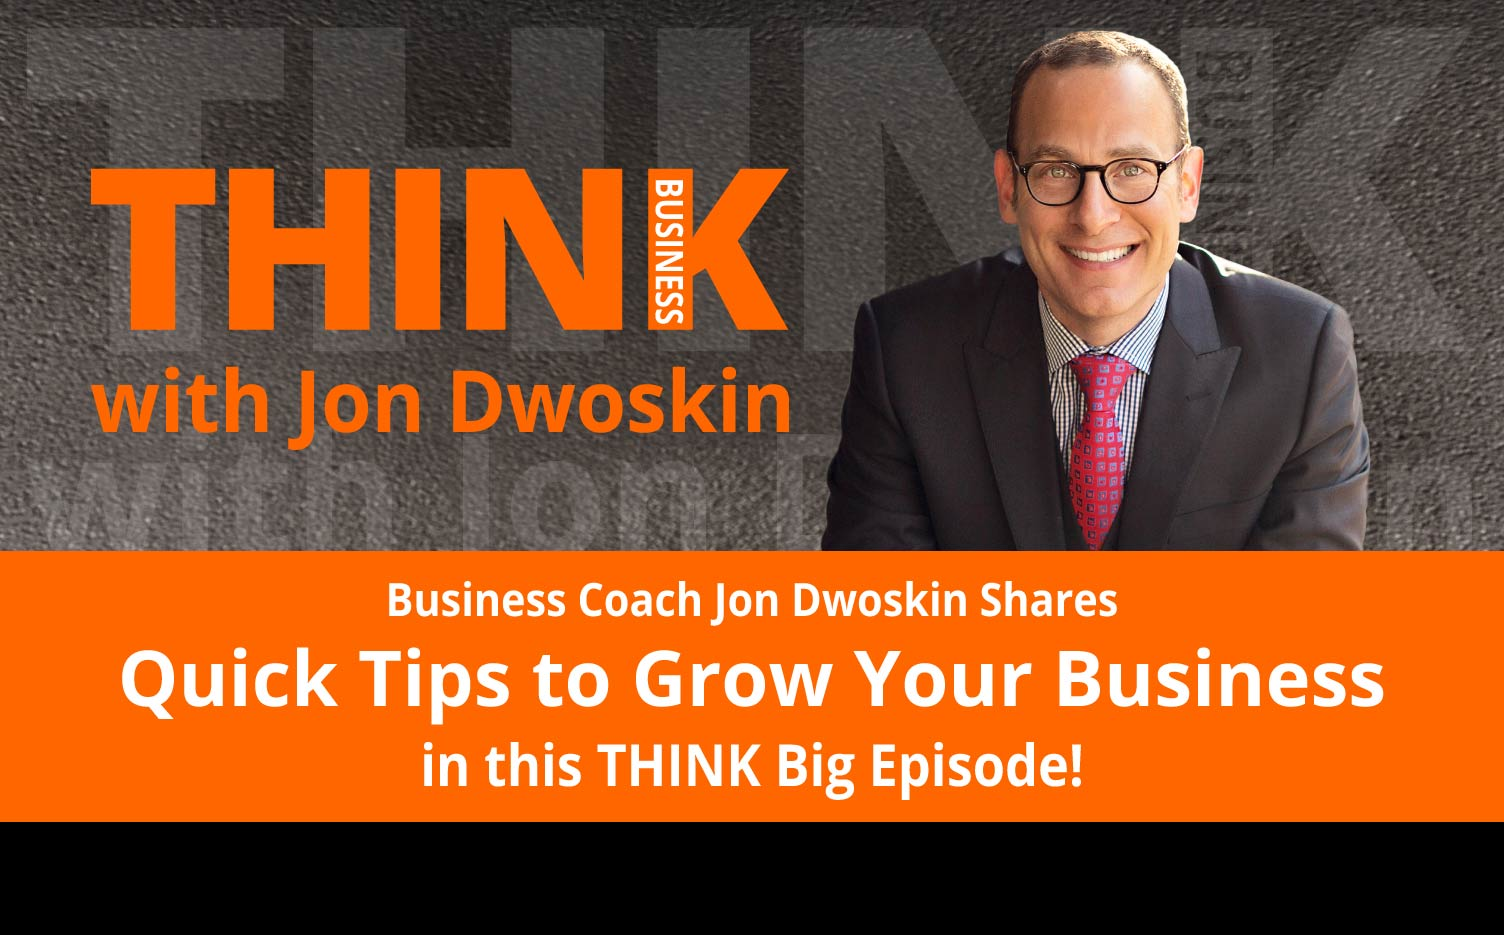 THINK Business Podcast: Today's Quick Tip: Prioritize Your Time